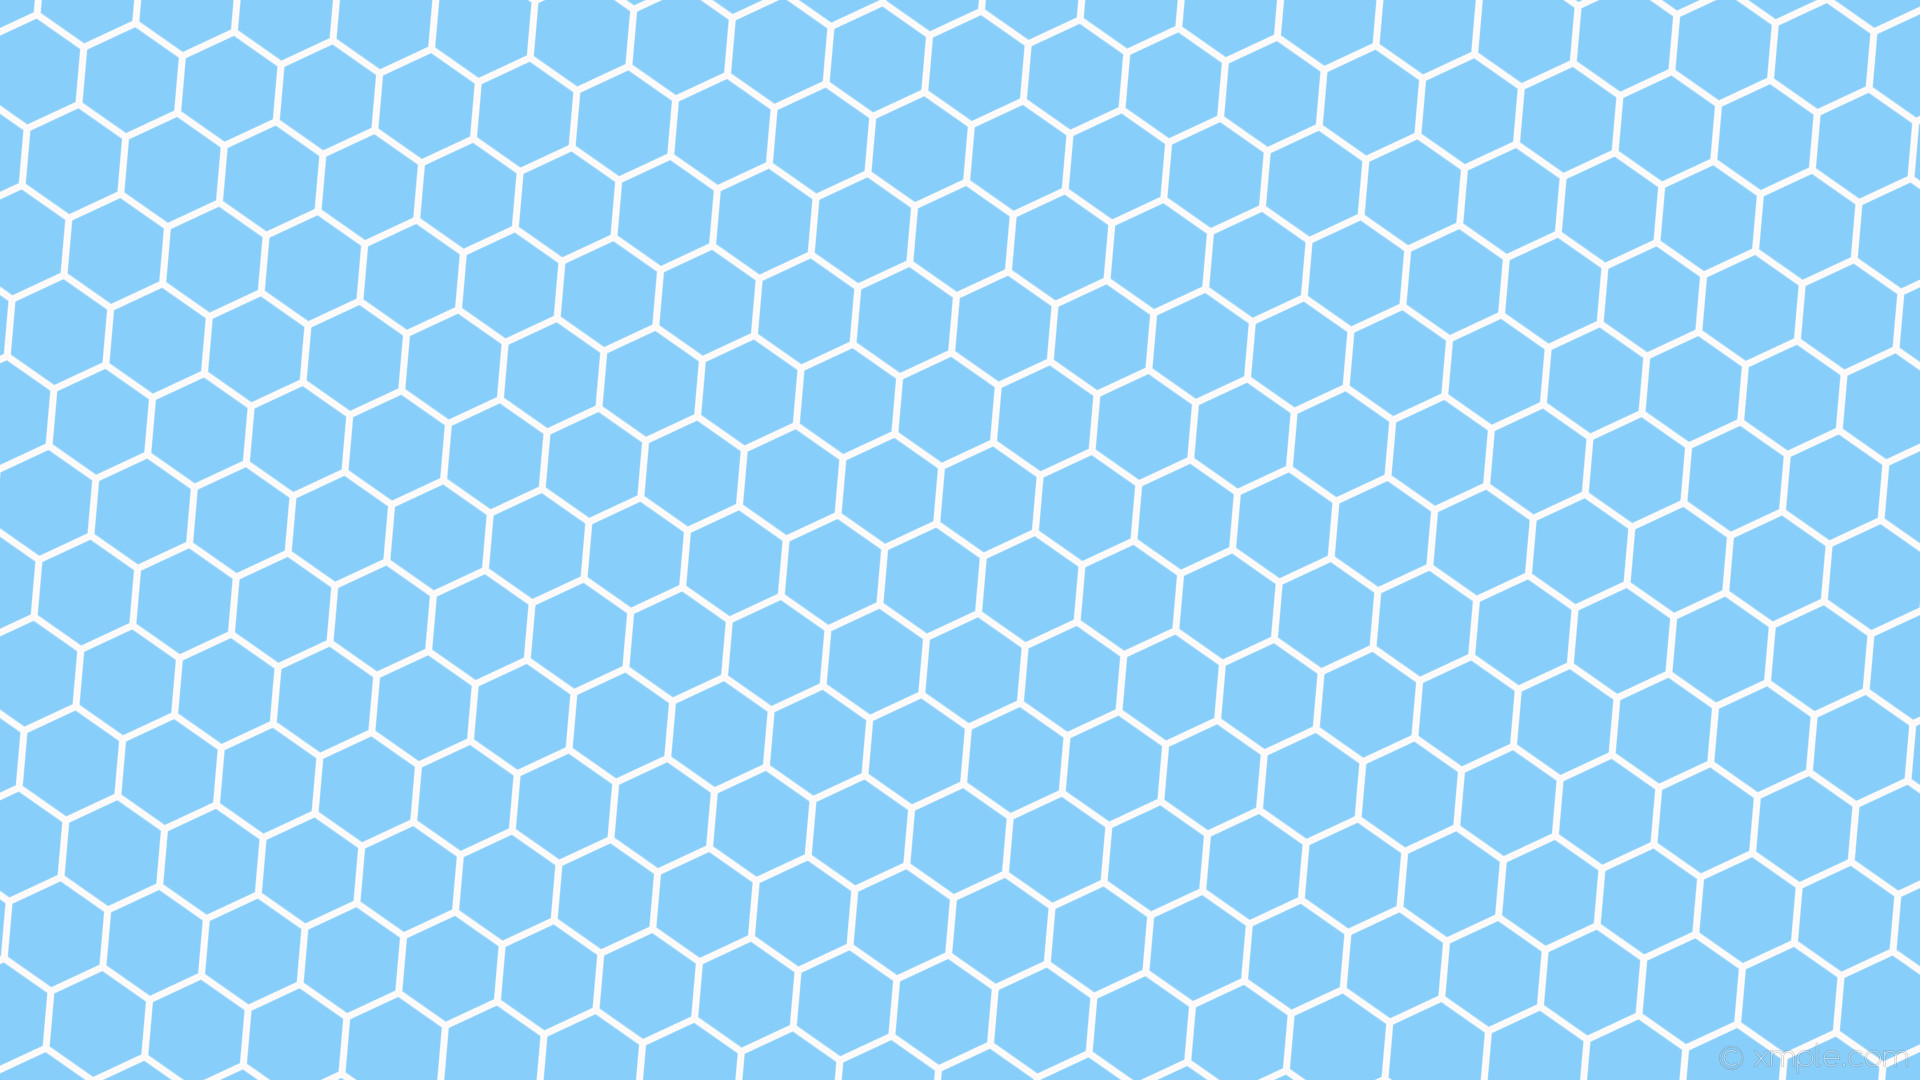 Res: 1920x1080, wallpaper beehive hexagon honeycomb blue white light sky blue snow #87cefa  #fffafa diagonal 55